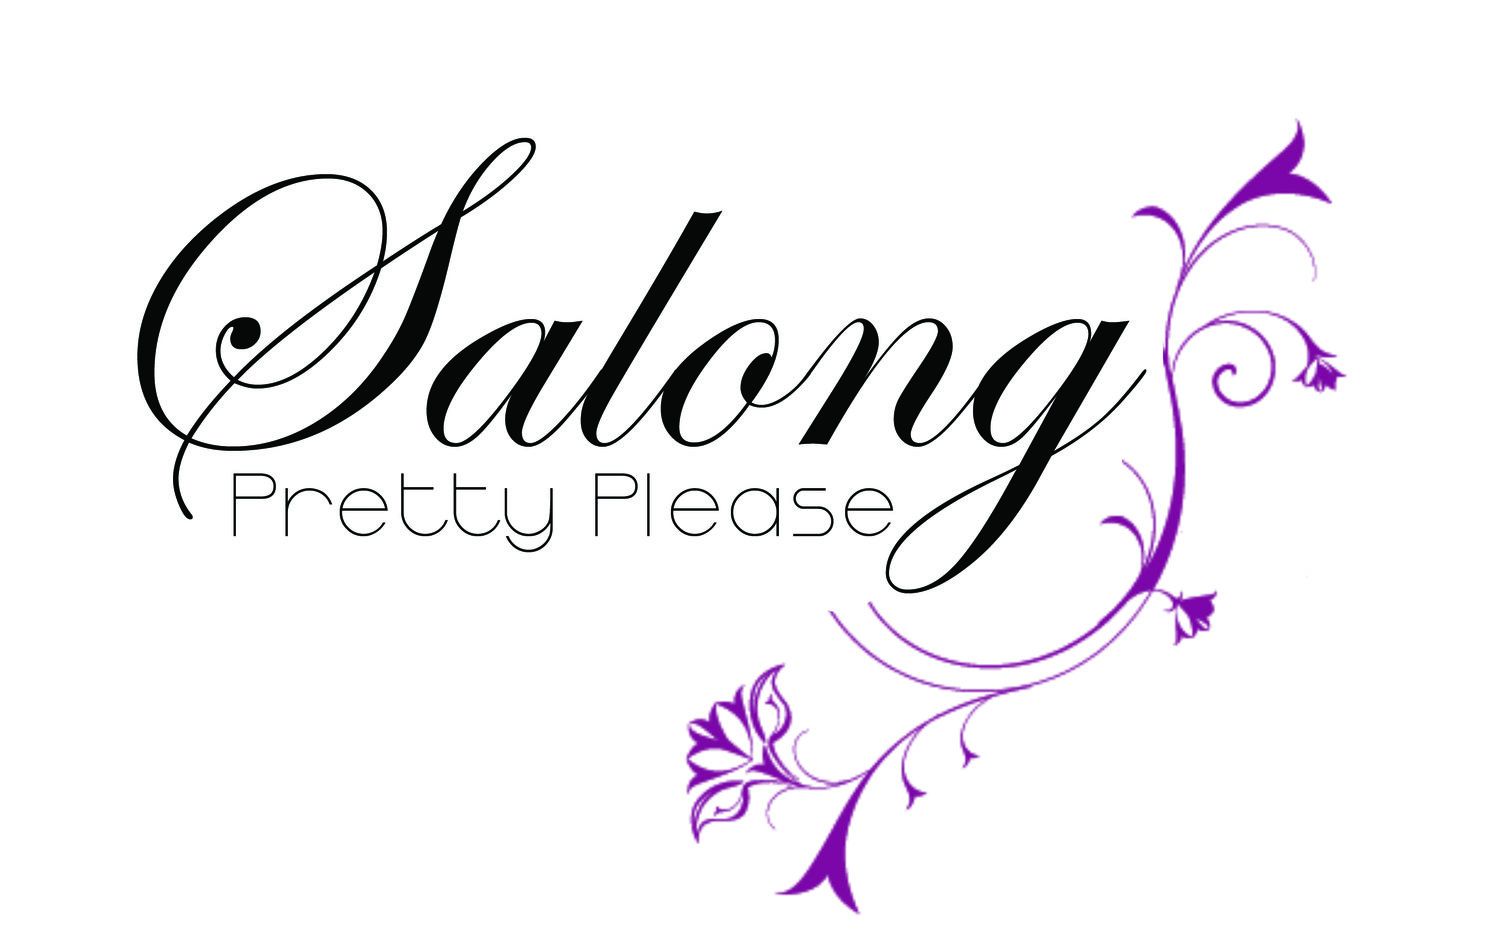 Salong Pretty Please